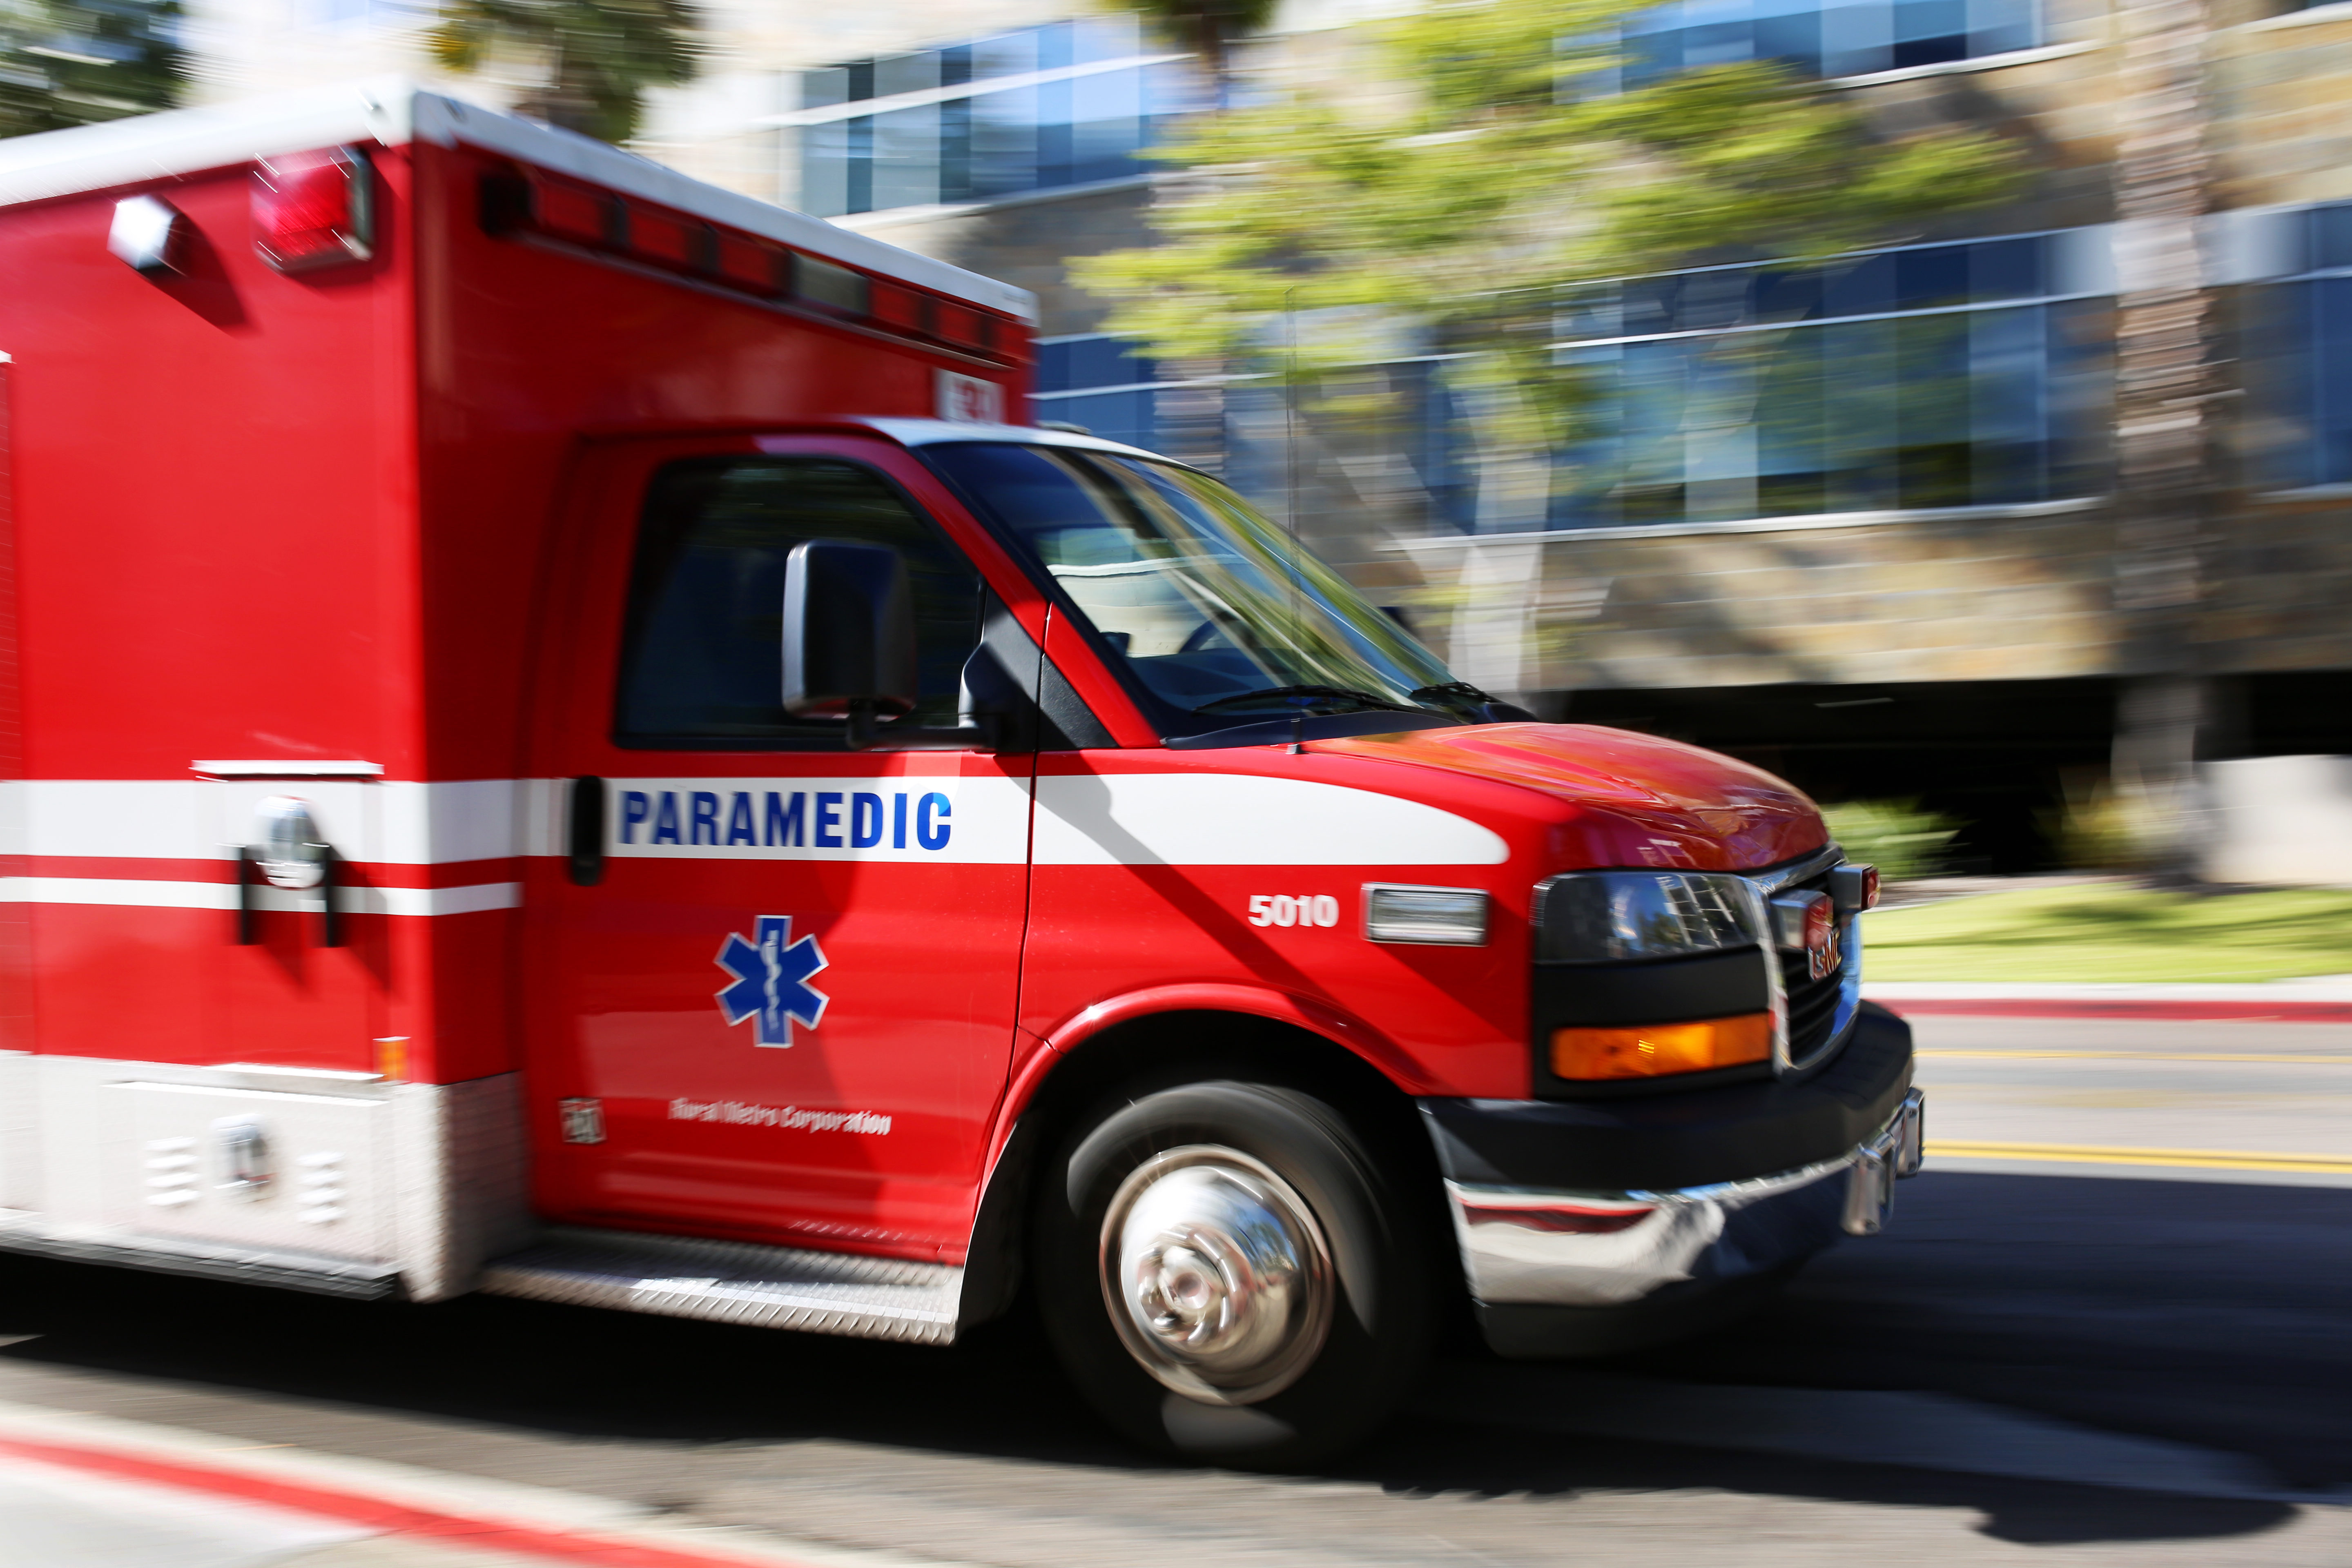 Advanced EMTs practically overlooked, except by Border Patrol - San